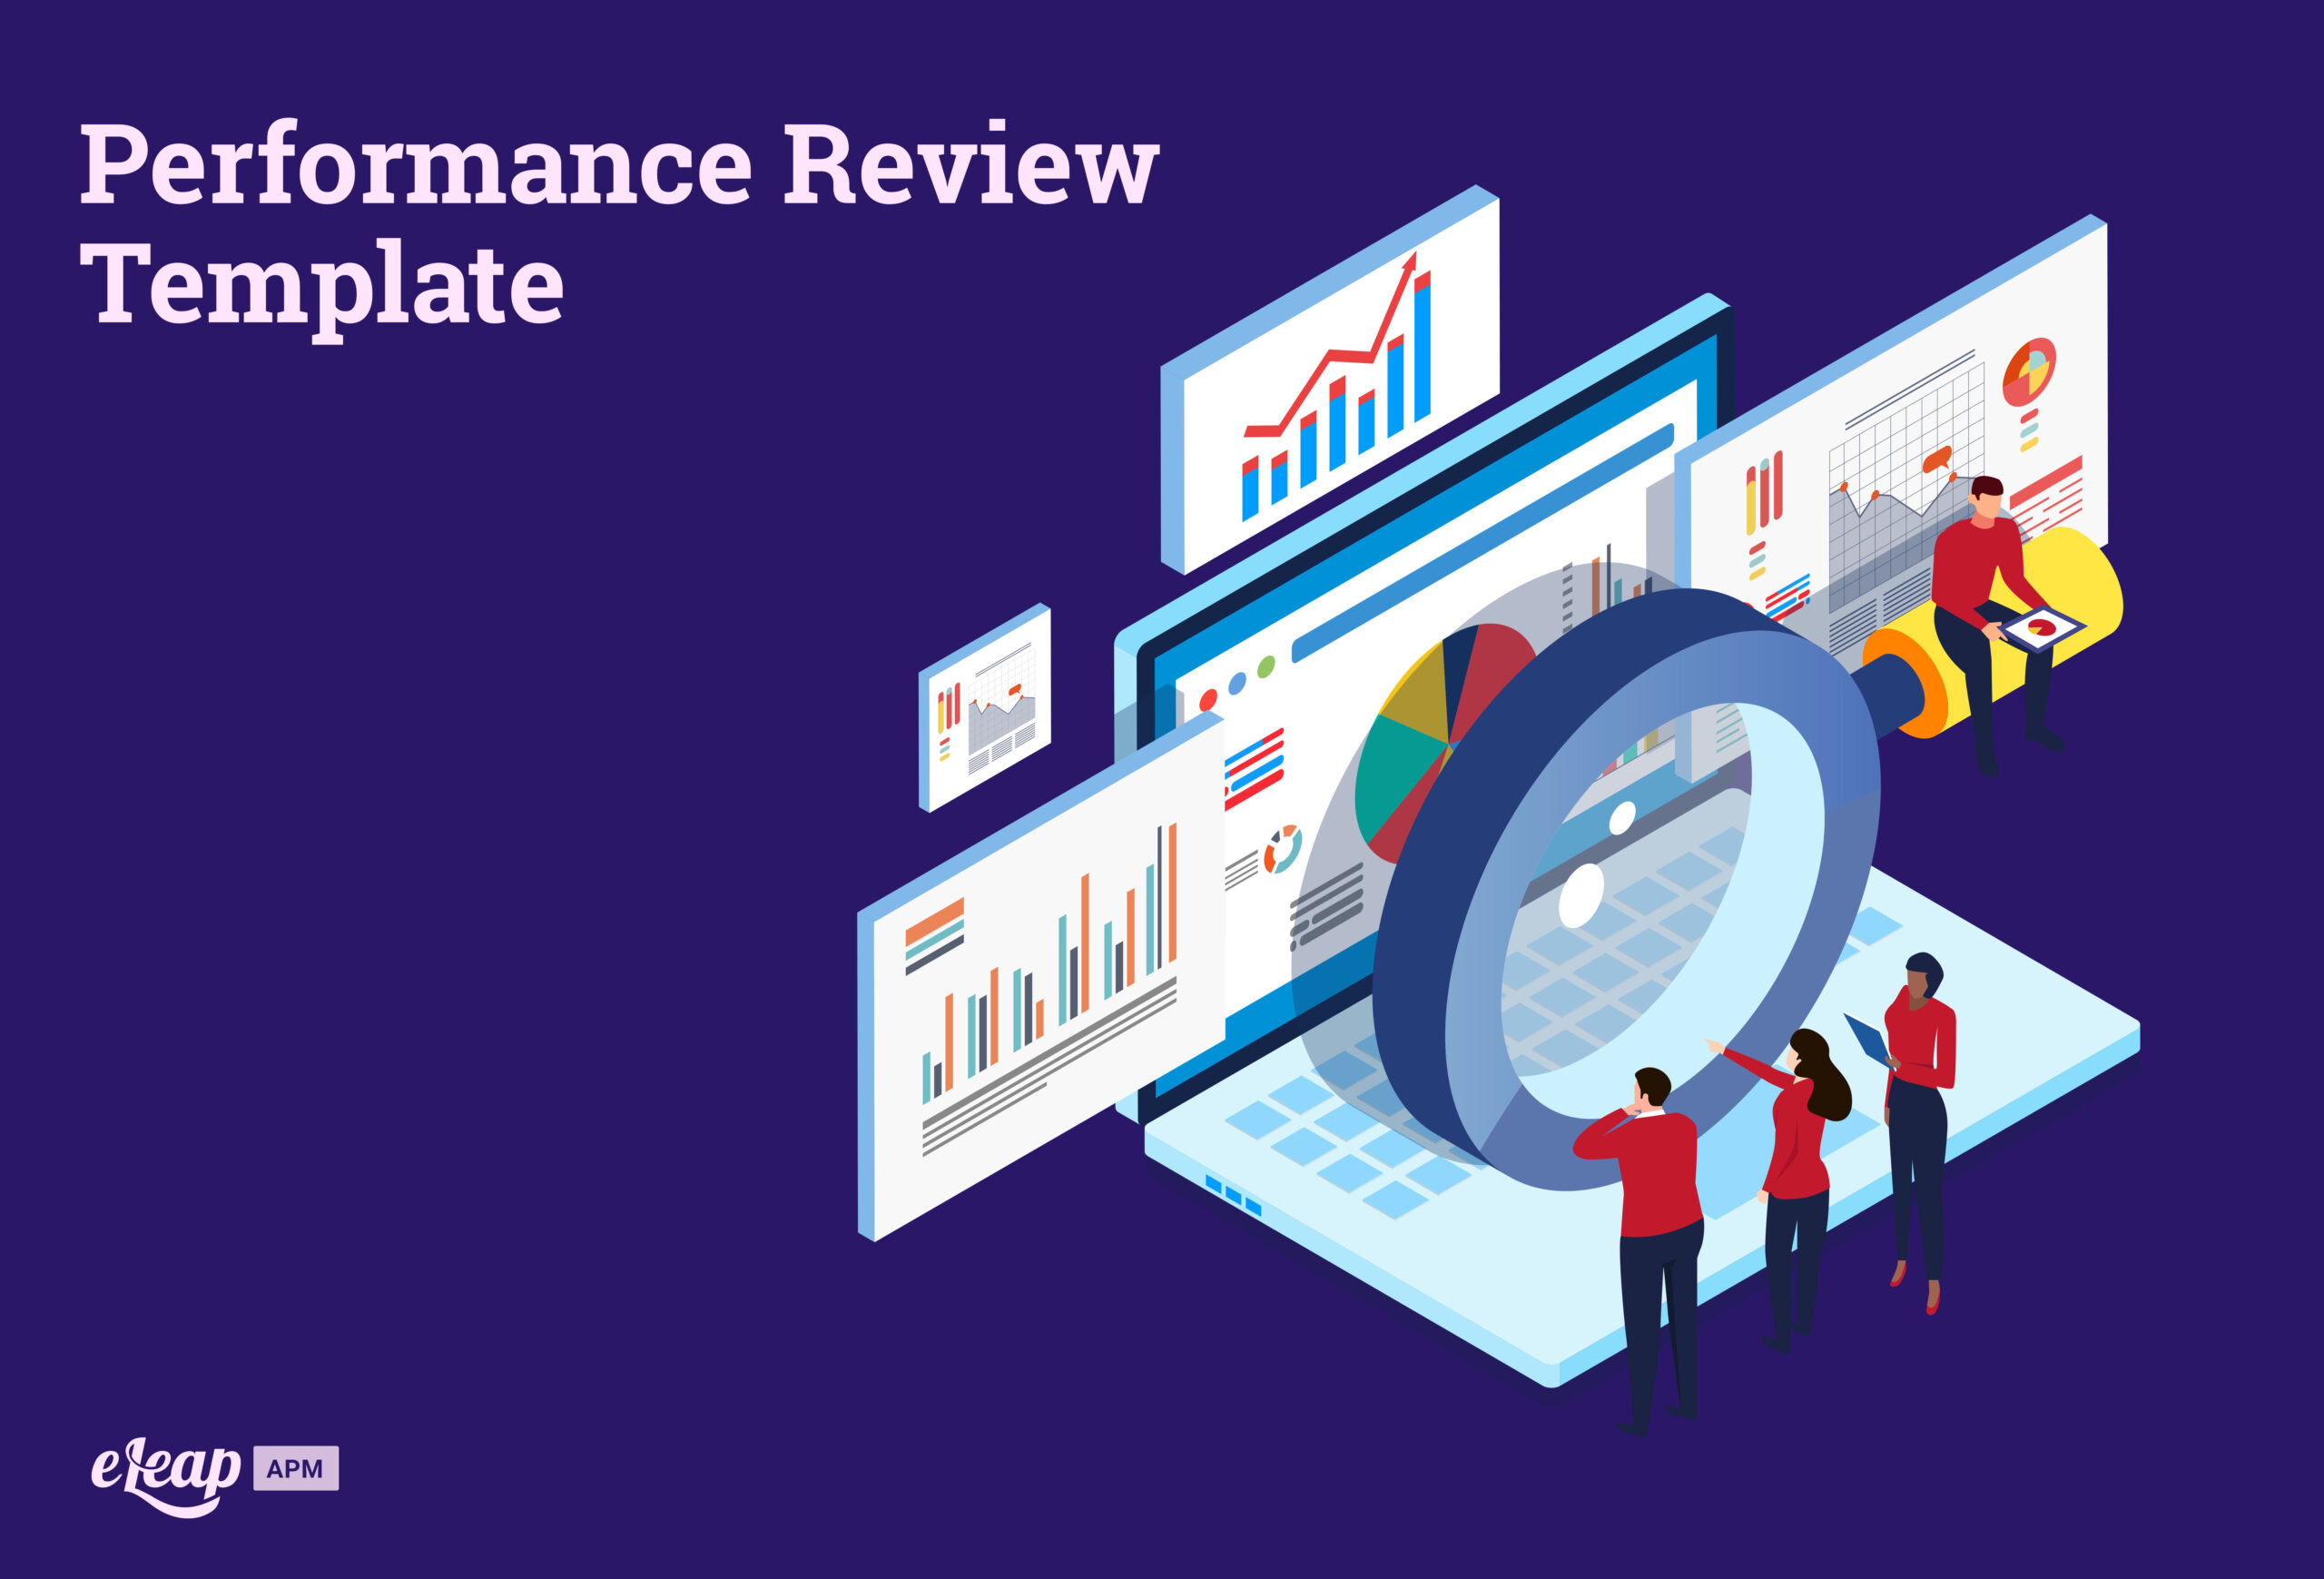 Performance Review Templates